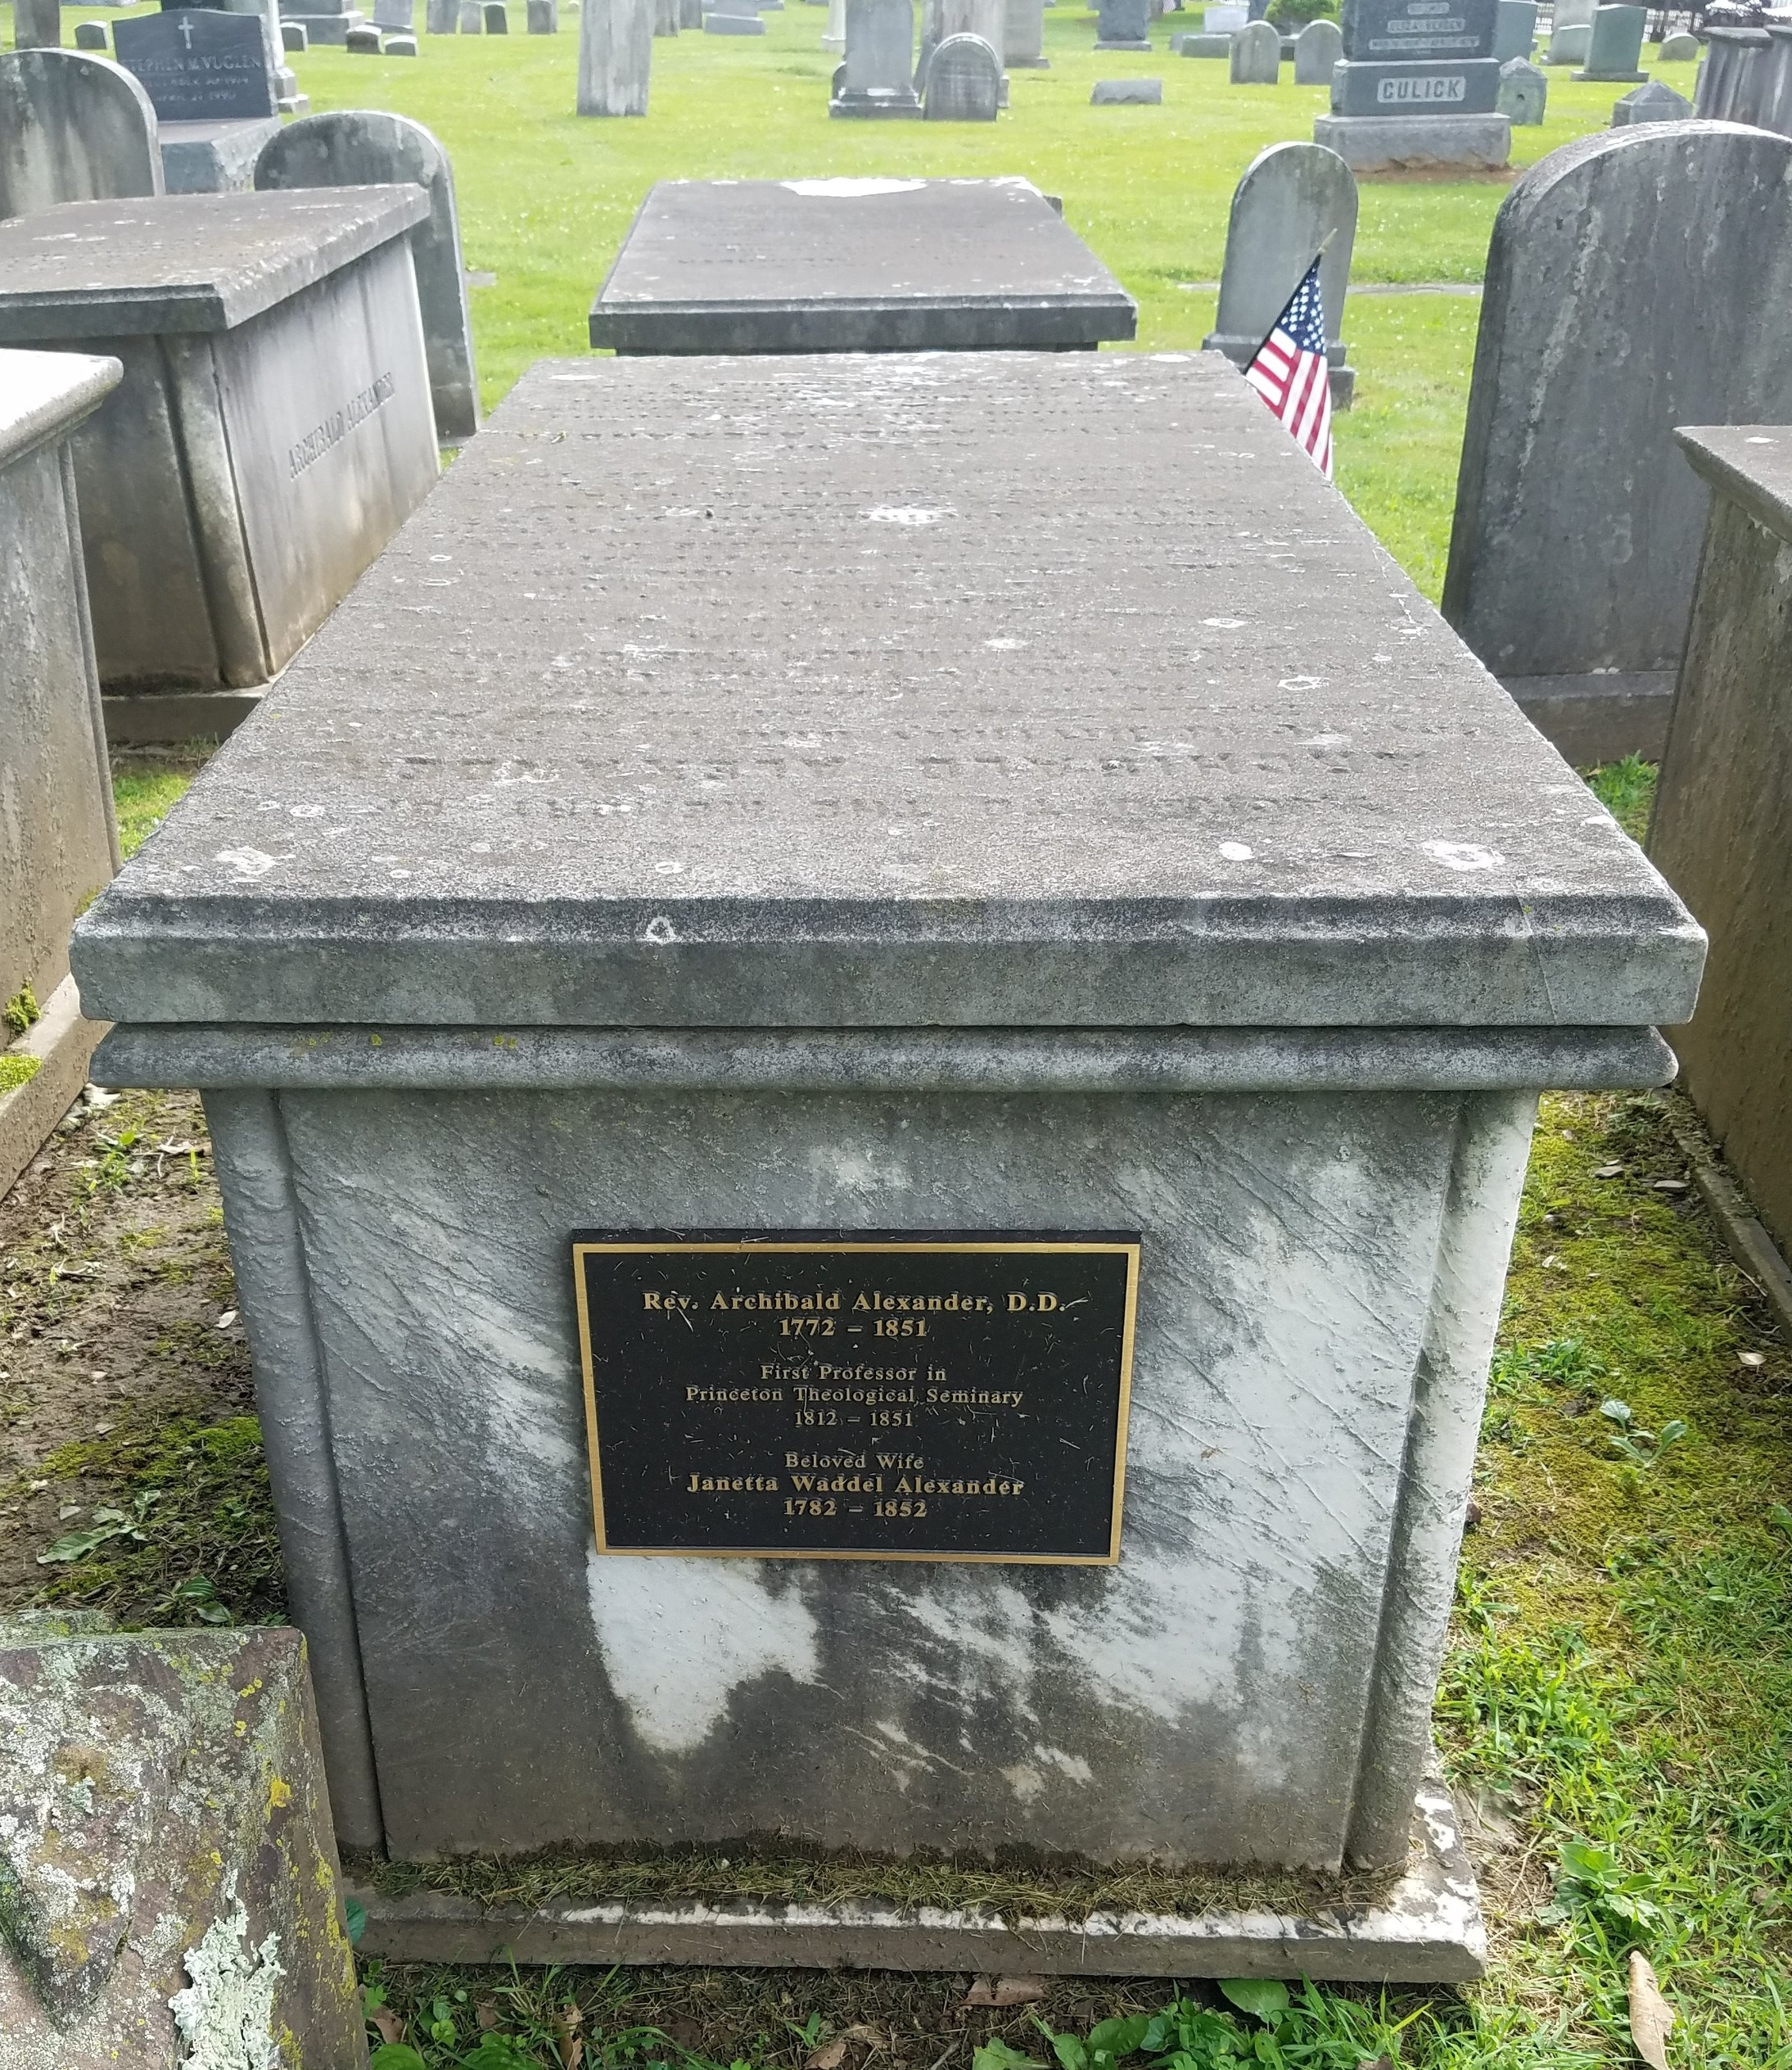 Archibald Alexander was buried at Princeton Cemetery, Princeton, New Jersey (photo credit: R. Andrew Myers).